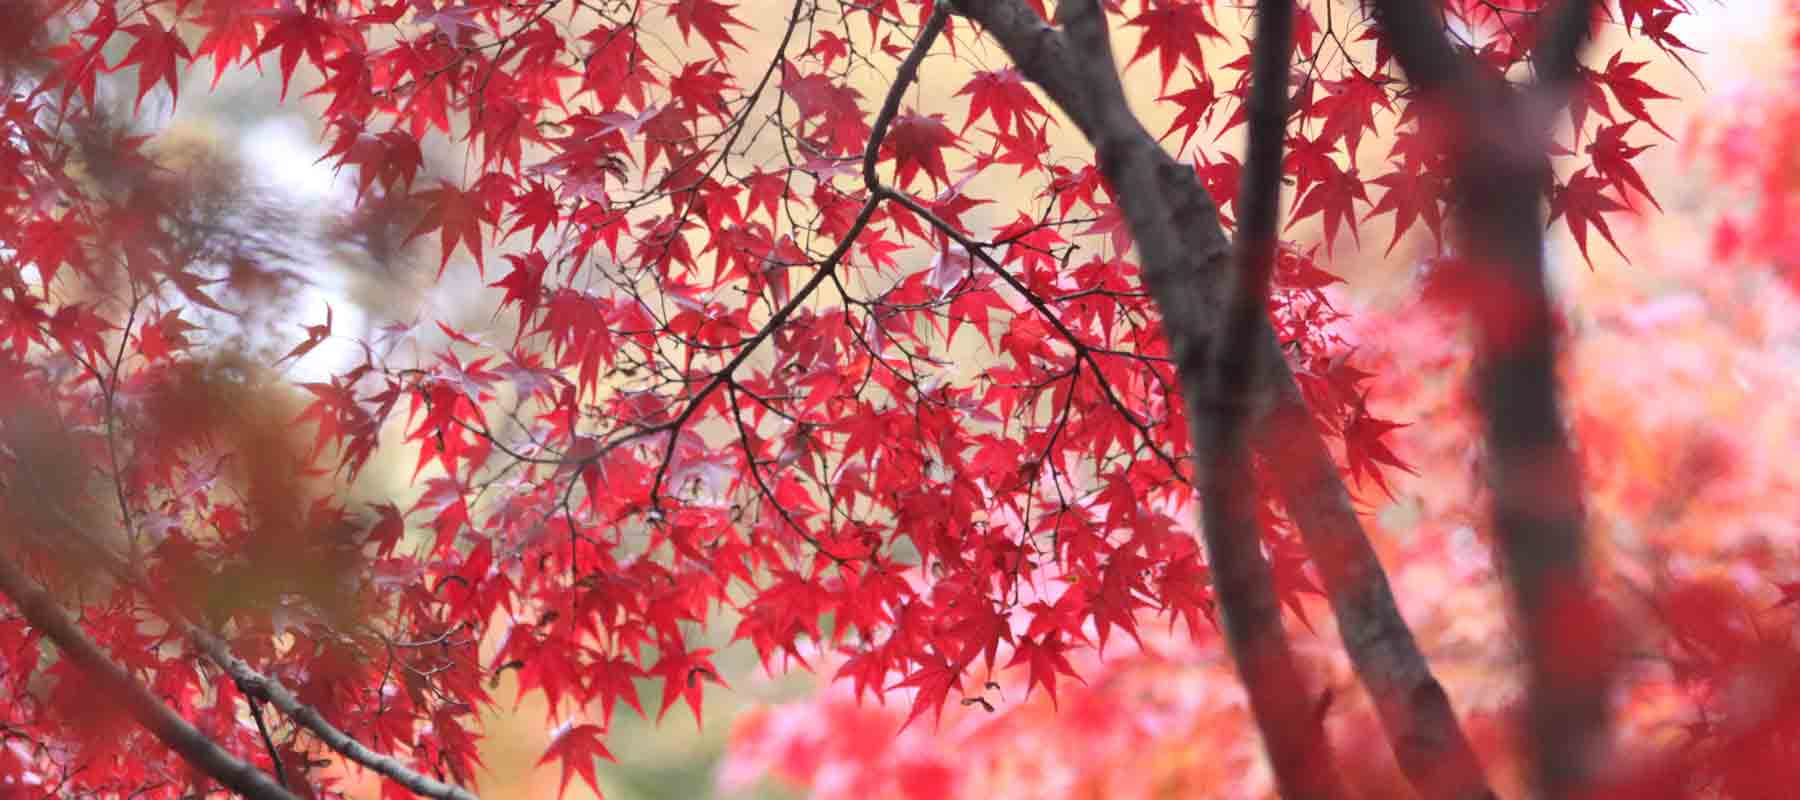 Real Japanese Maple Leaf Jewellery and Gifts made using real Japanese Maple leaves